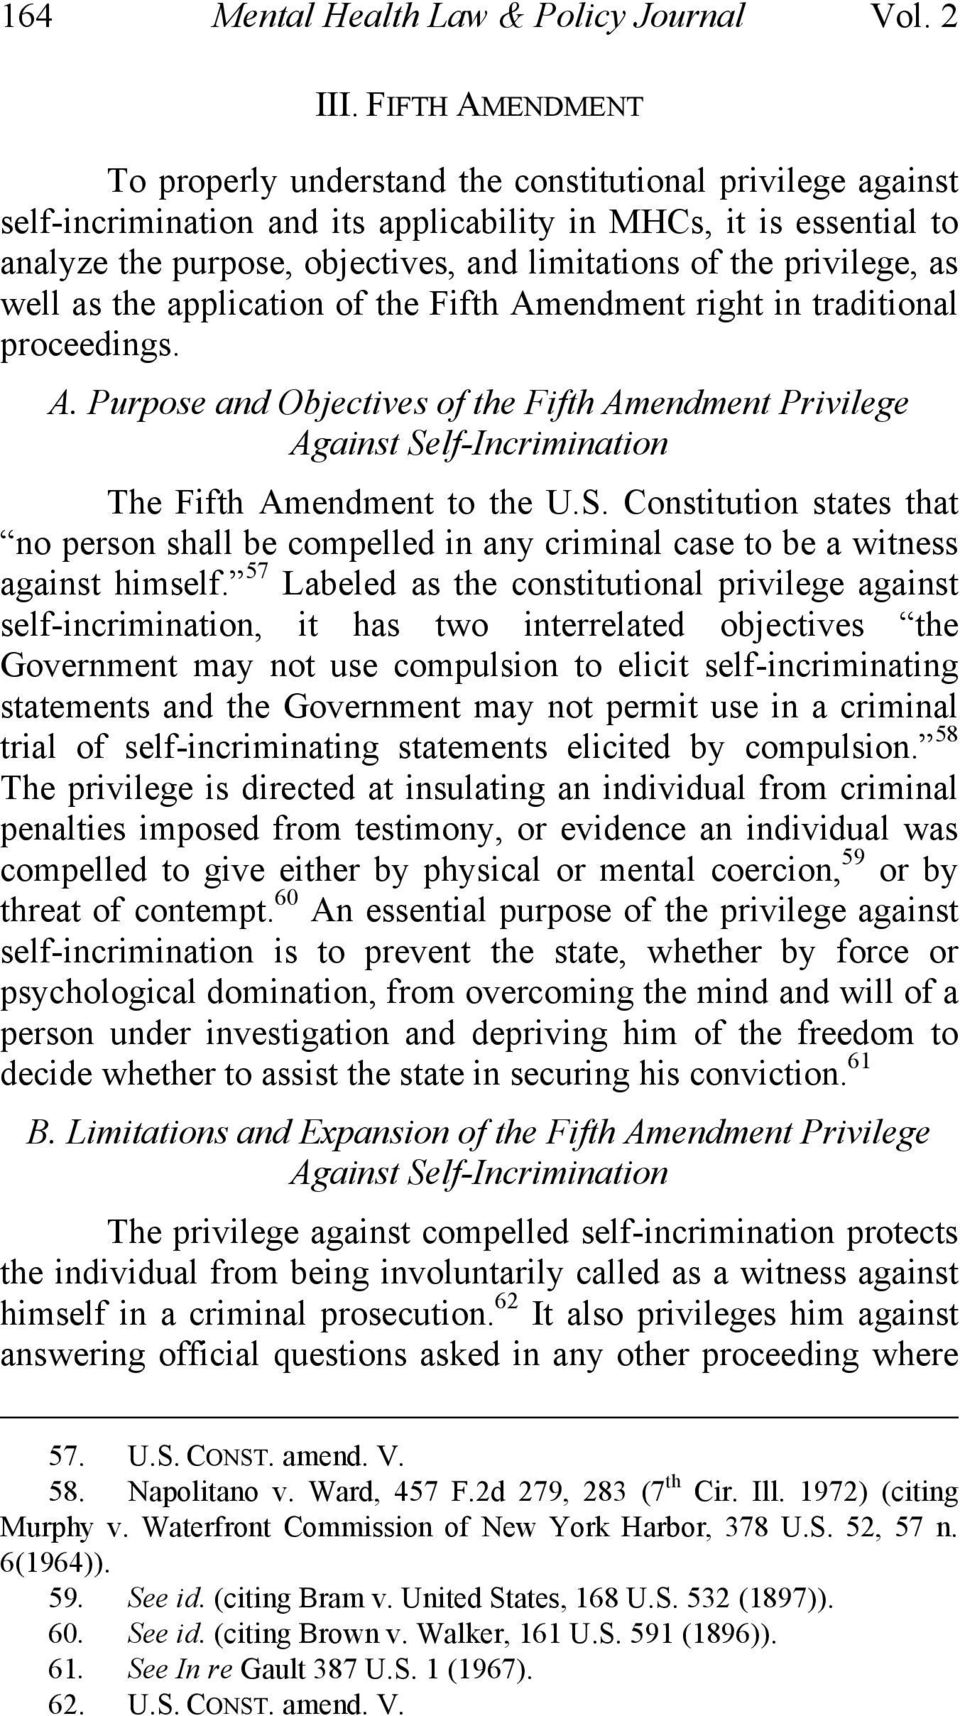 the privilege, as well as the application of the Fifth Amendment right in traditional proceedings. A. Purpose and Objectives of the Fifth Amendment Privilege Against Self-Incrimination The Fifth Amendment to the U.